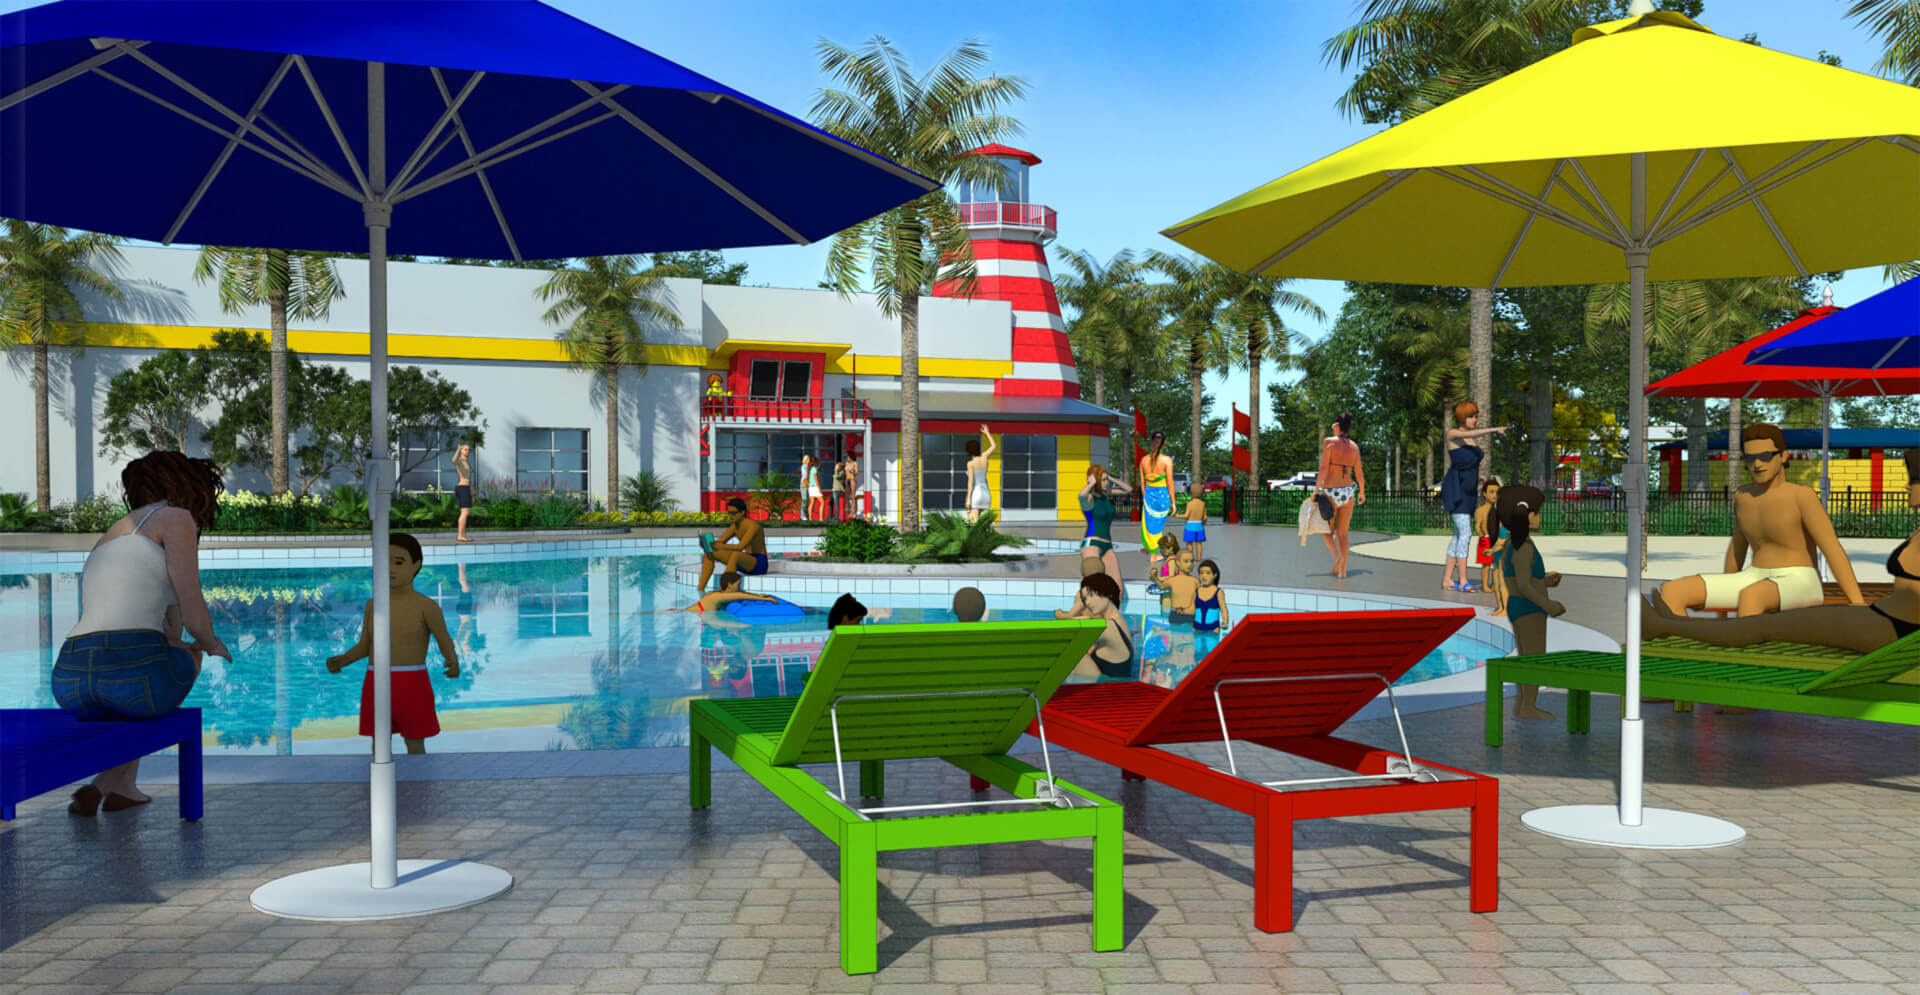 VIDEO LEGOLAND Beach Retreat resort announced for 2017 at